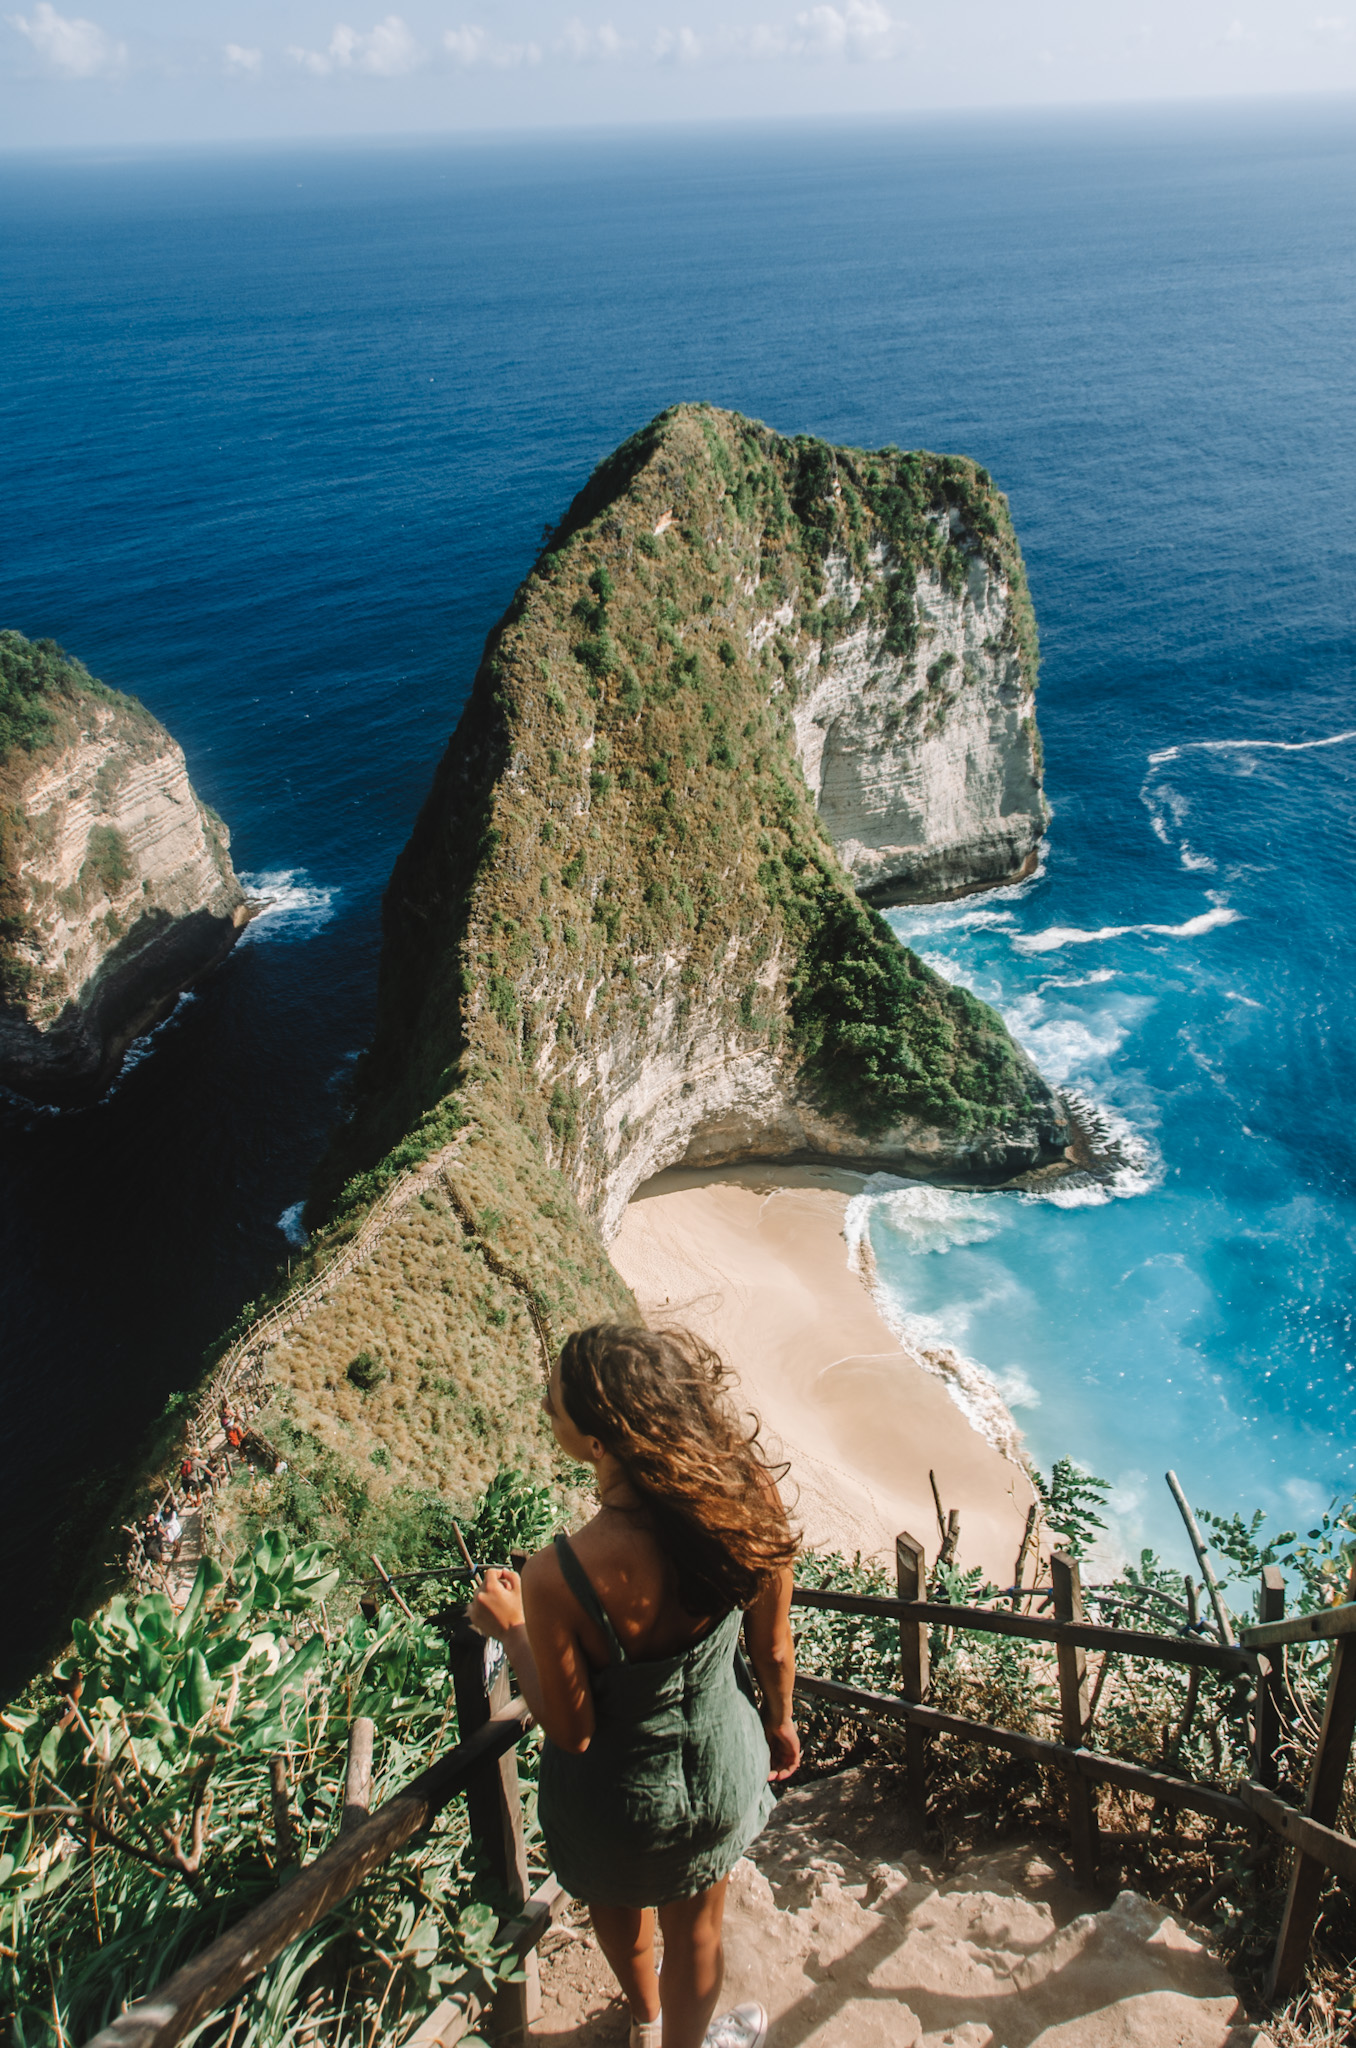 bali blues travel preset for lightroom